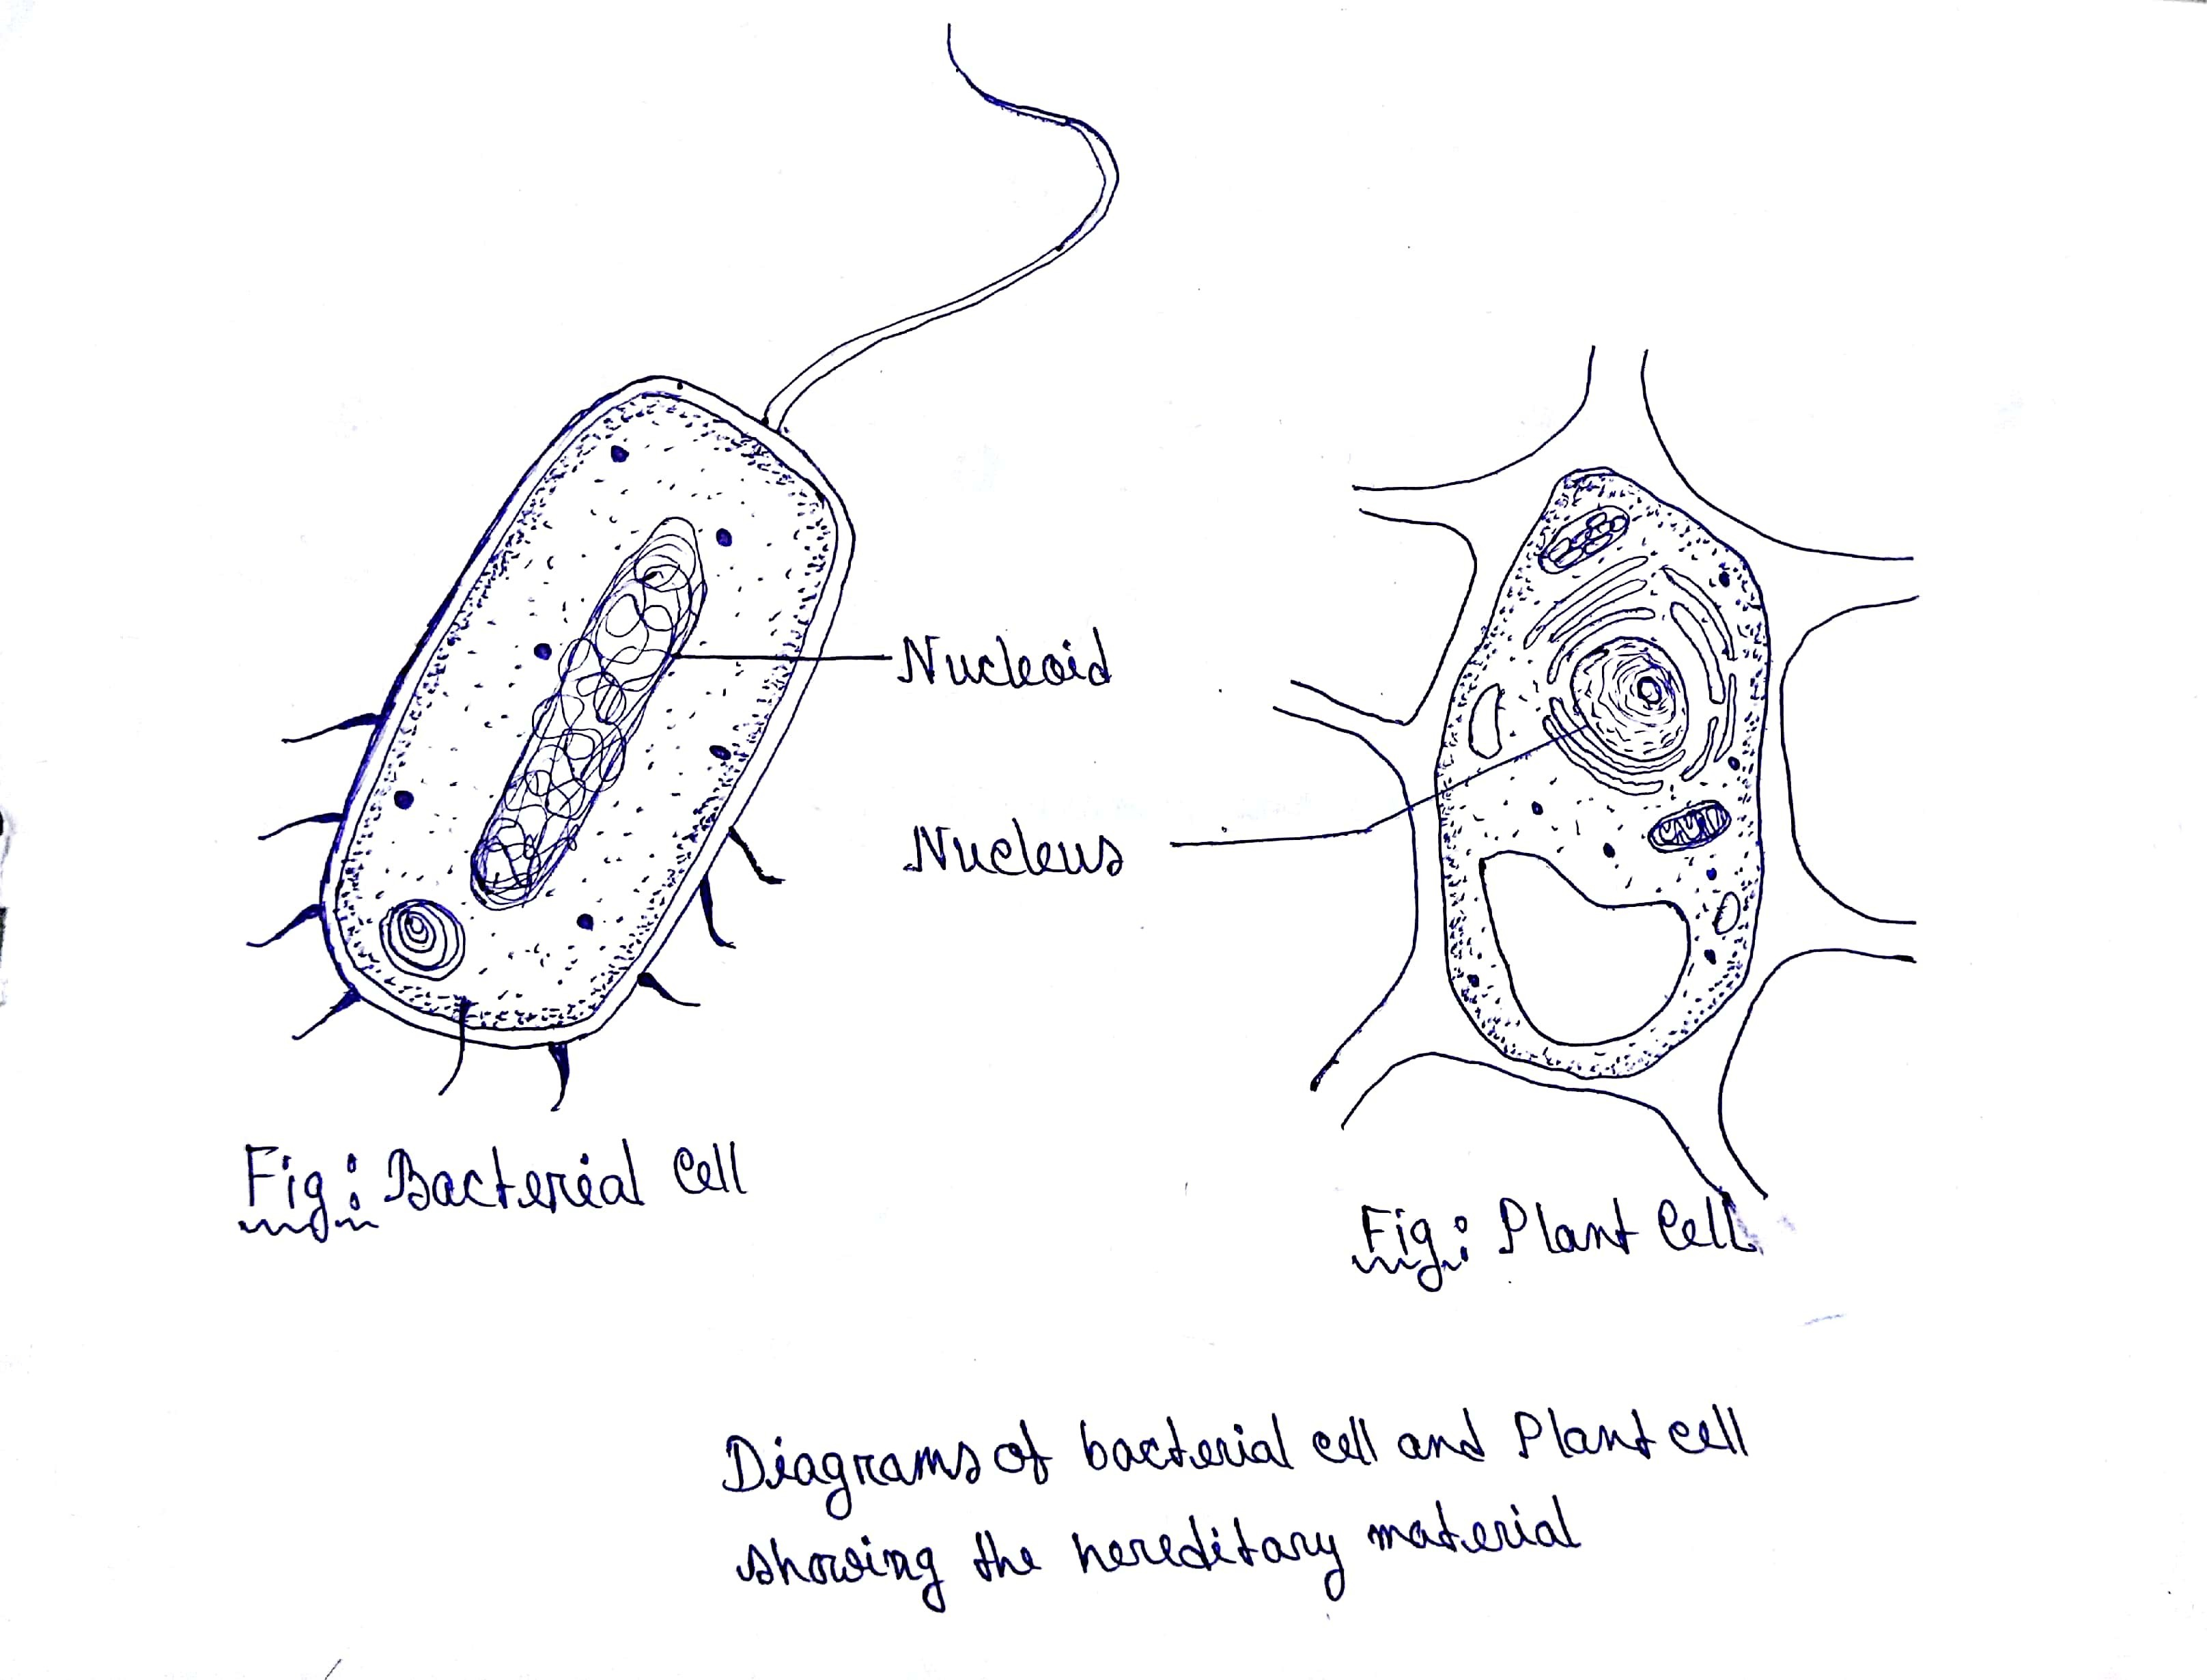 Draw Outline Diagrams Of A Bacterial Cell And A Plant Cell